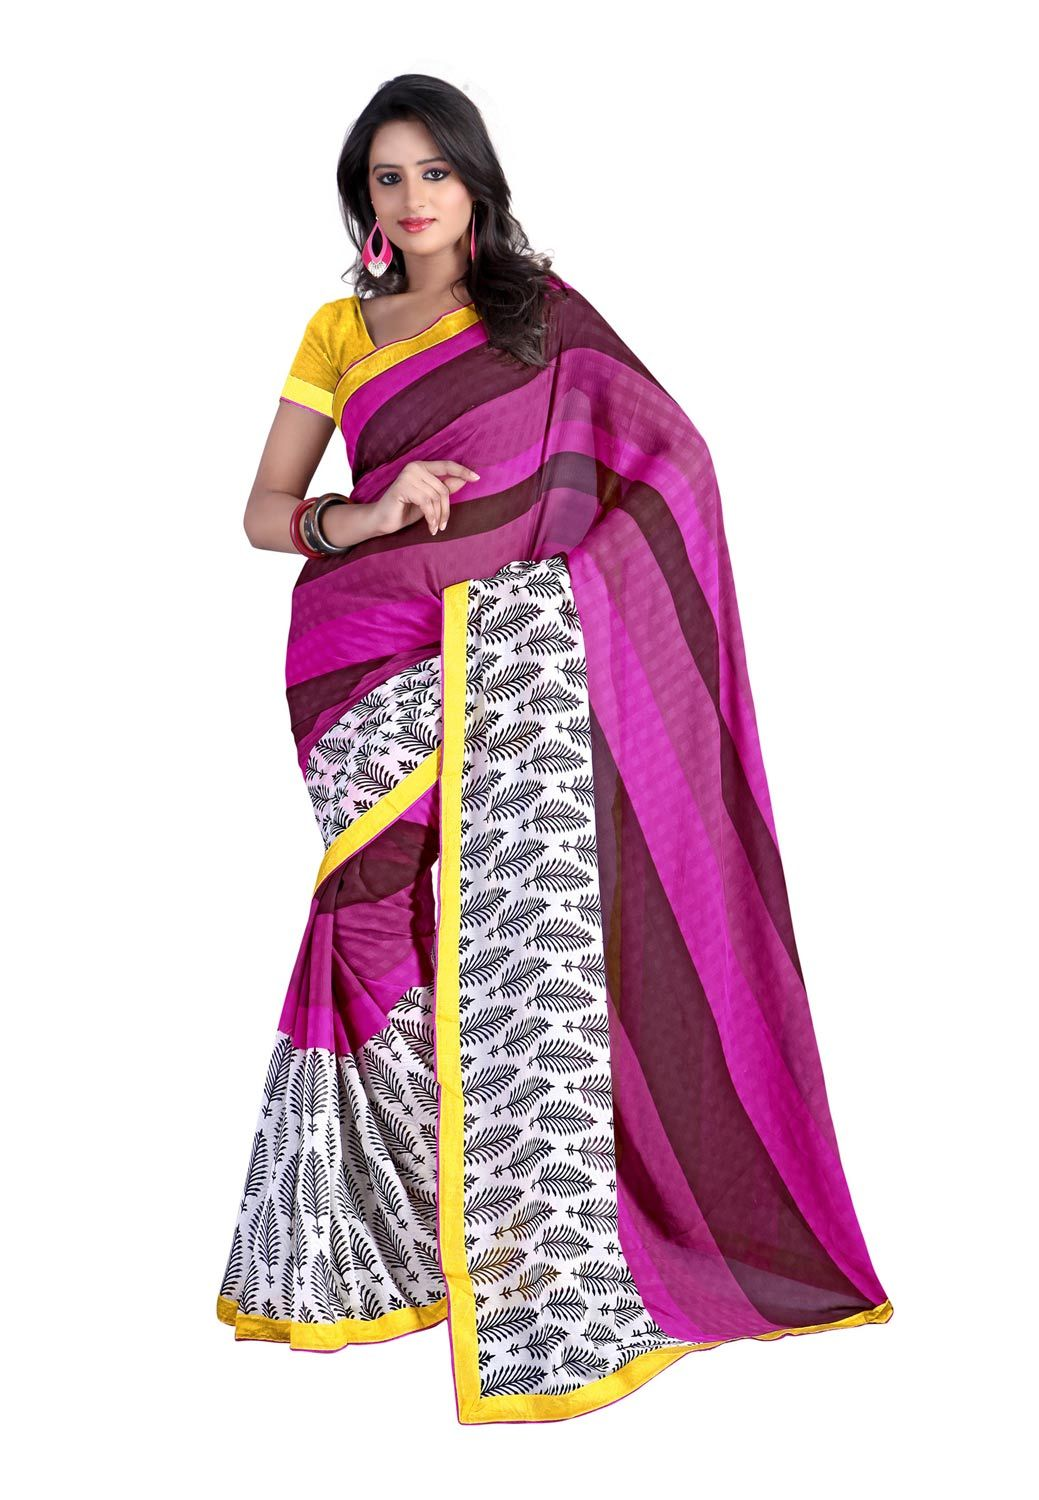 Images of saree shop fabdeal pink and white colored chiffonsaree online at lowest